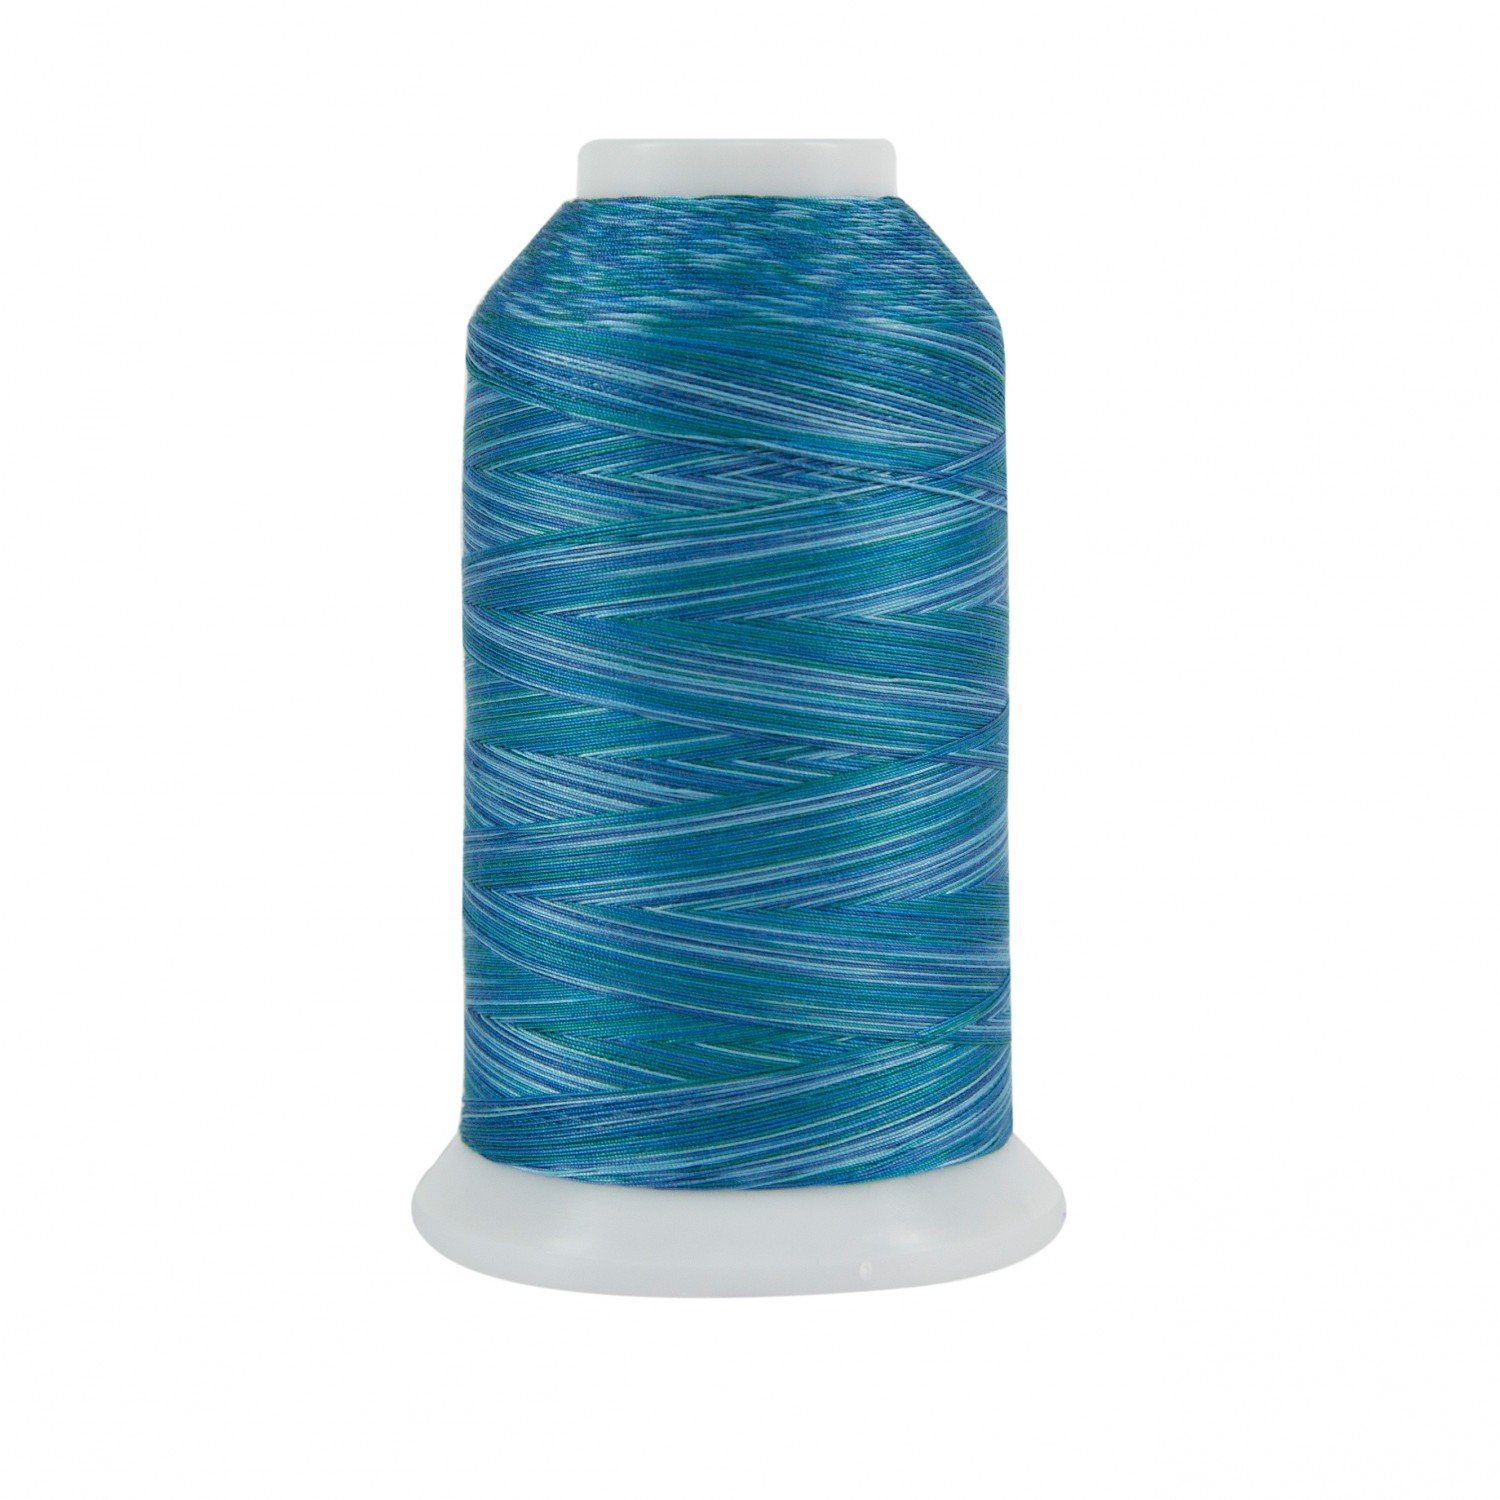 King Tut Cotton Quilting Thread 930 Thebes 3-ply 40wt 2000yds Cone